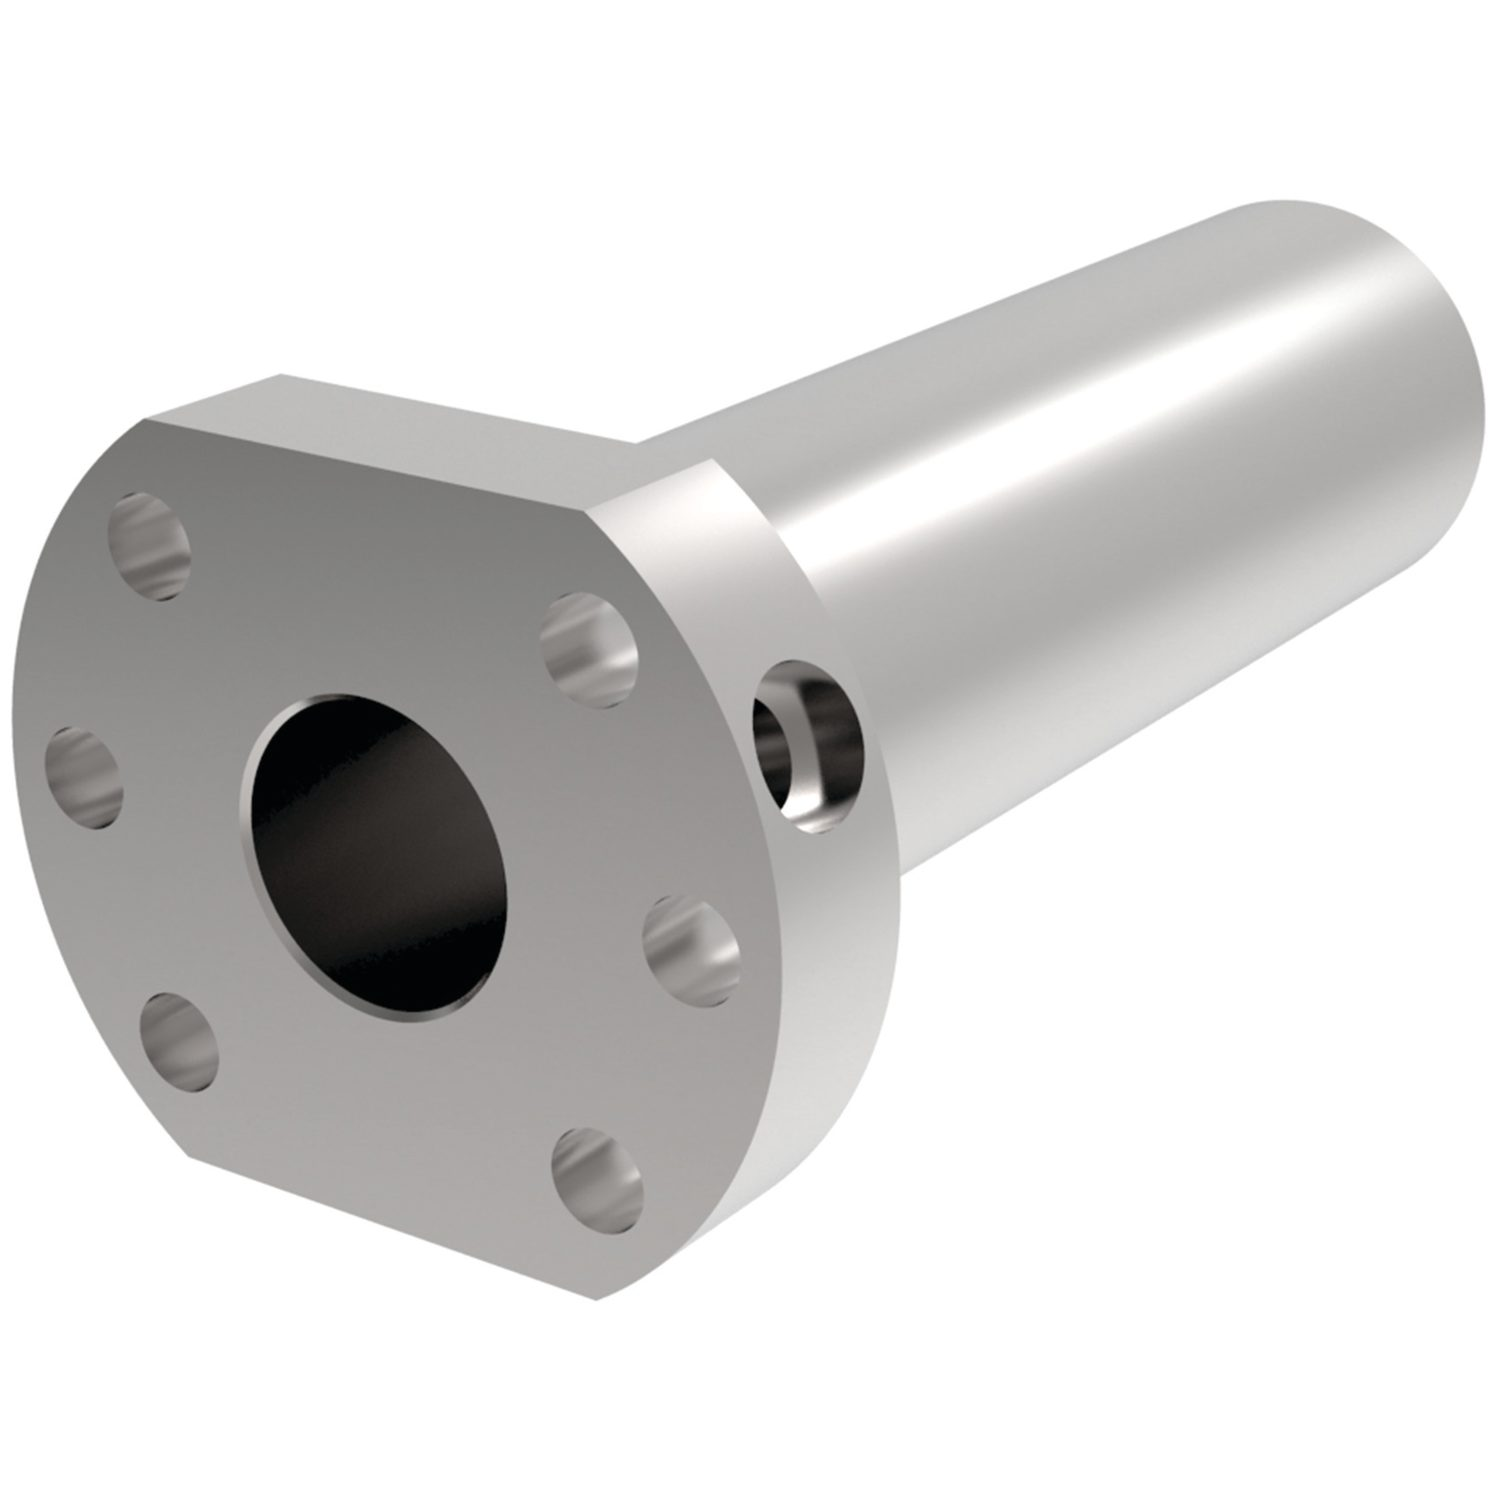 Flanged Double Ball Nuts